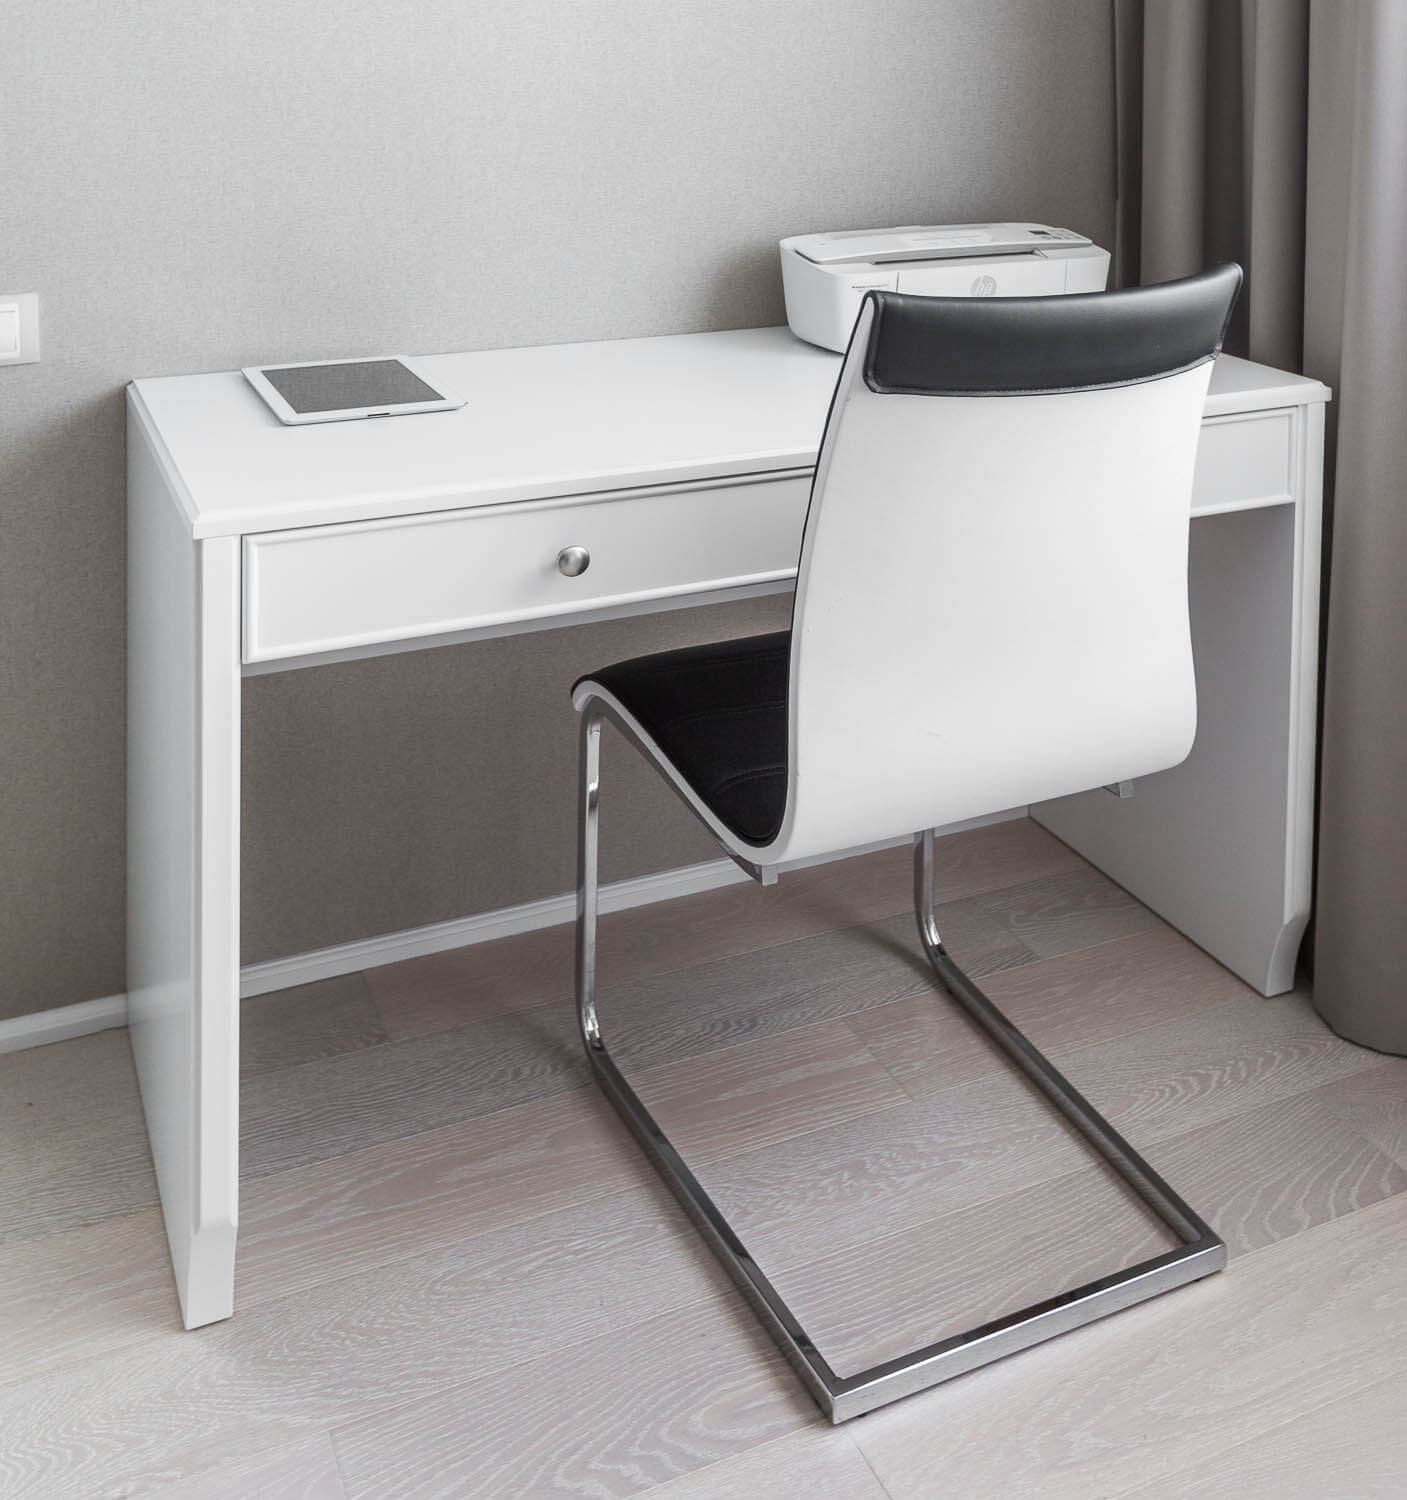 Senso Design Custom Office Furniture